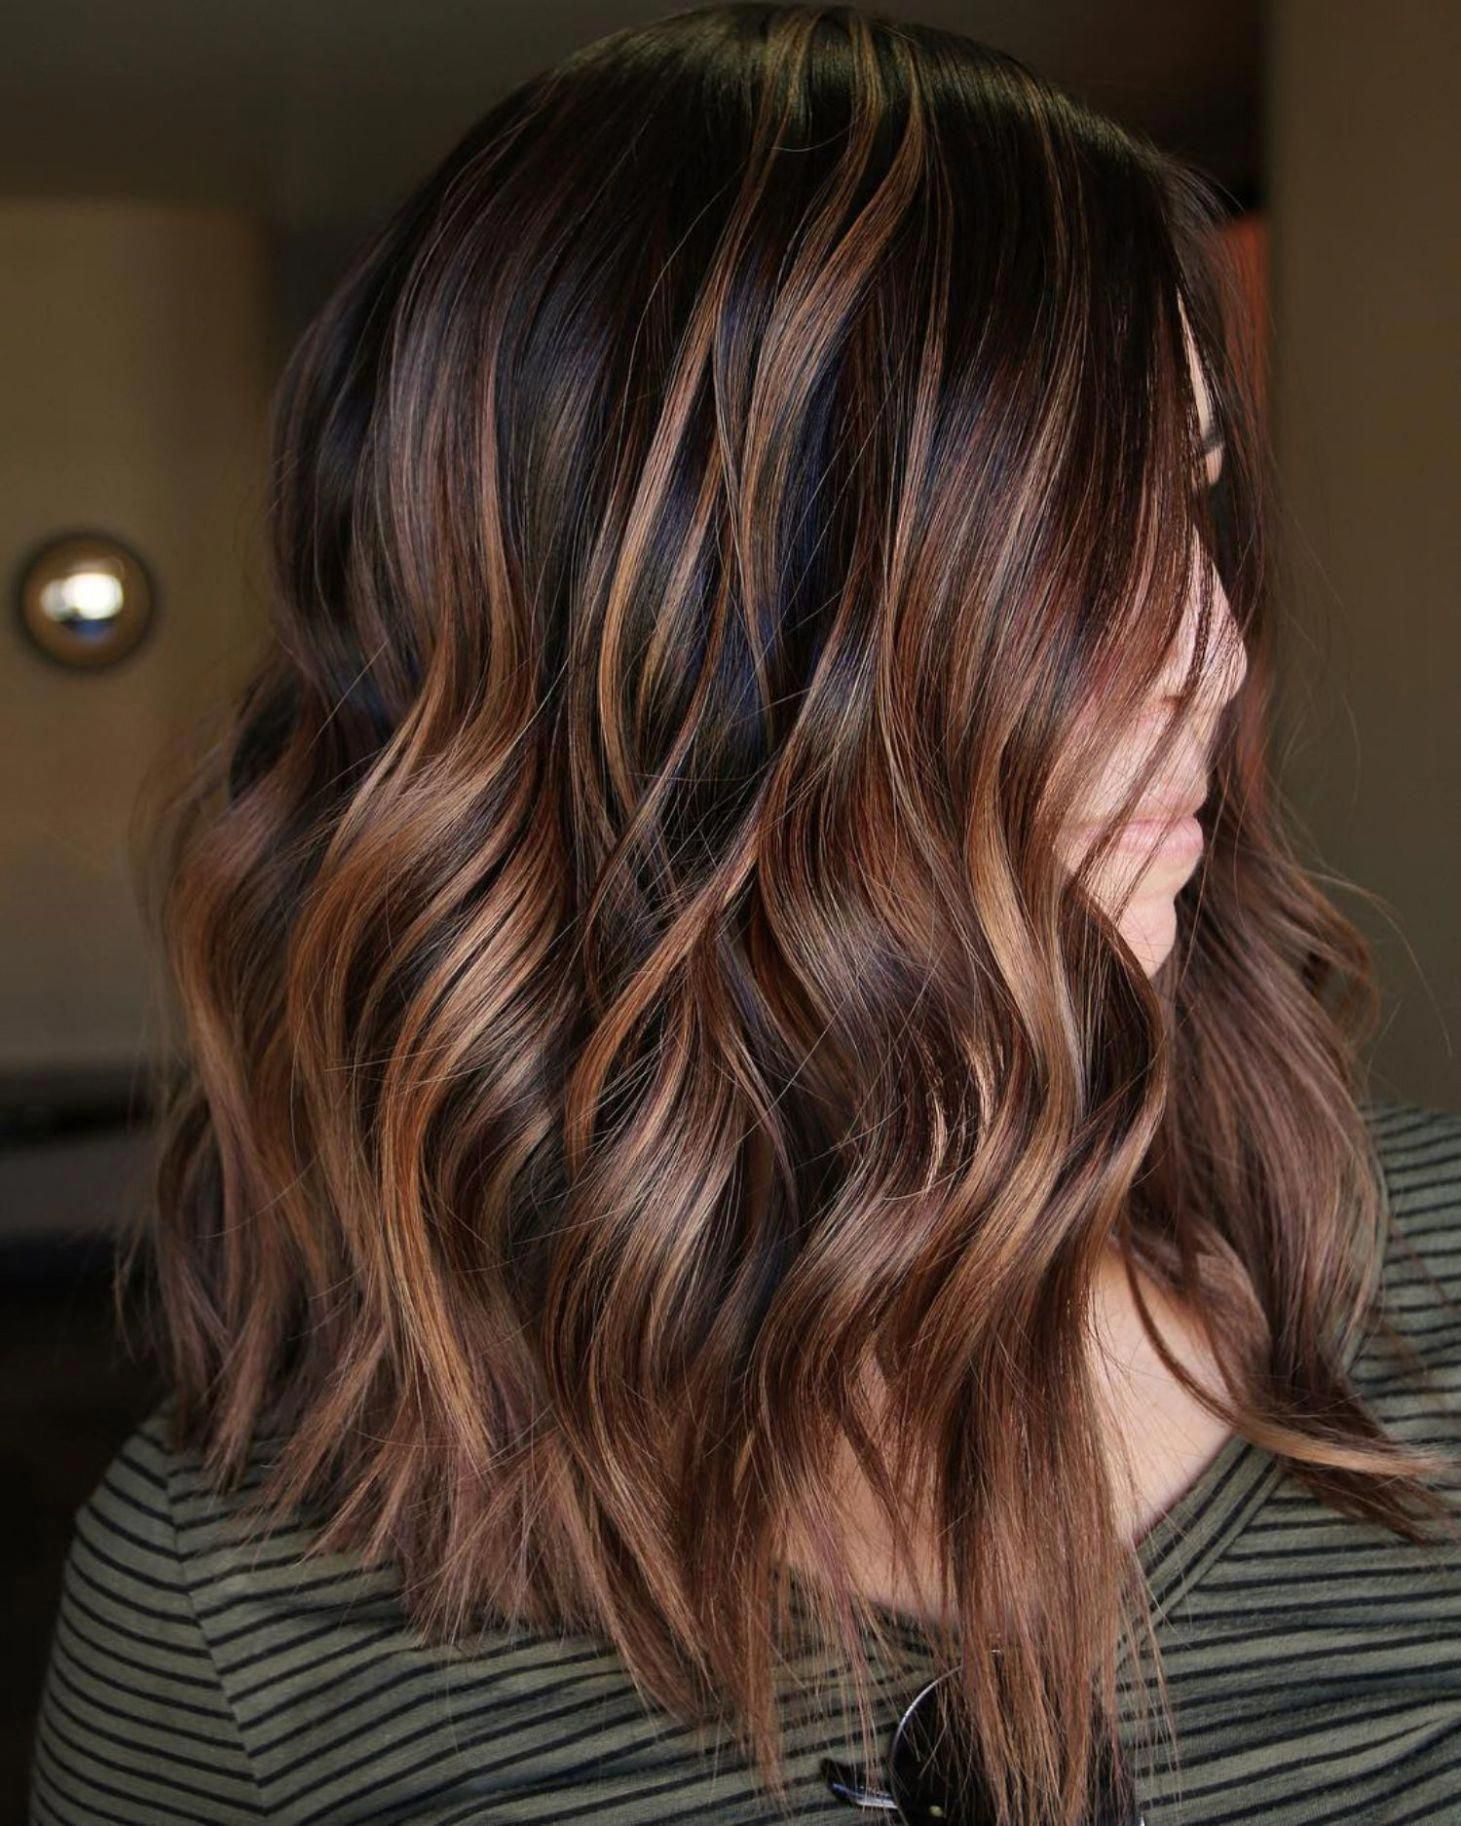 60 Looks With Caramel Highlights On Brown And Dark Brown Hair Hair Styles Brunette Hair Color Long Hair Styles